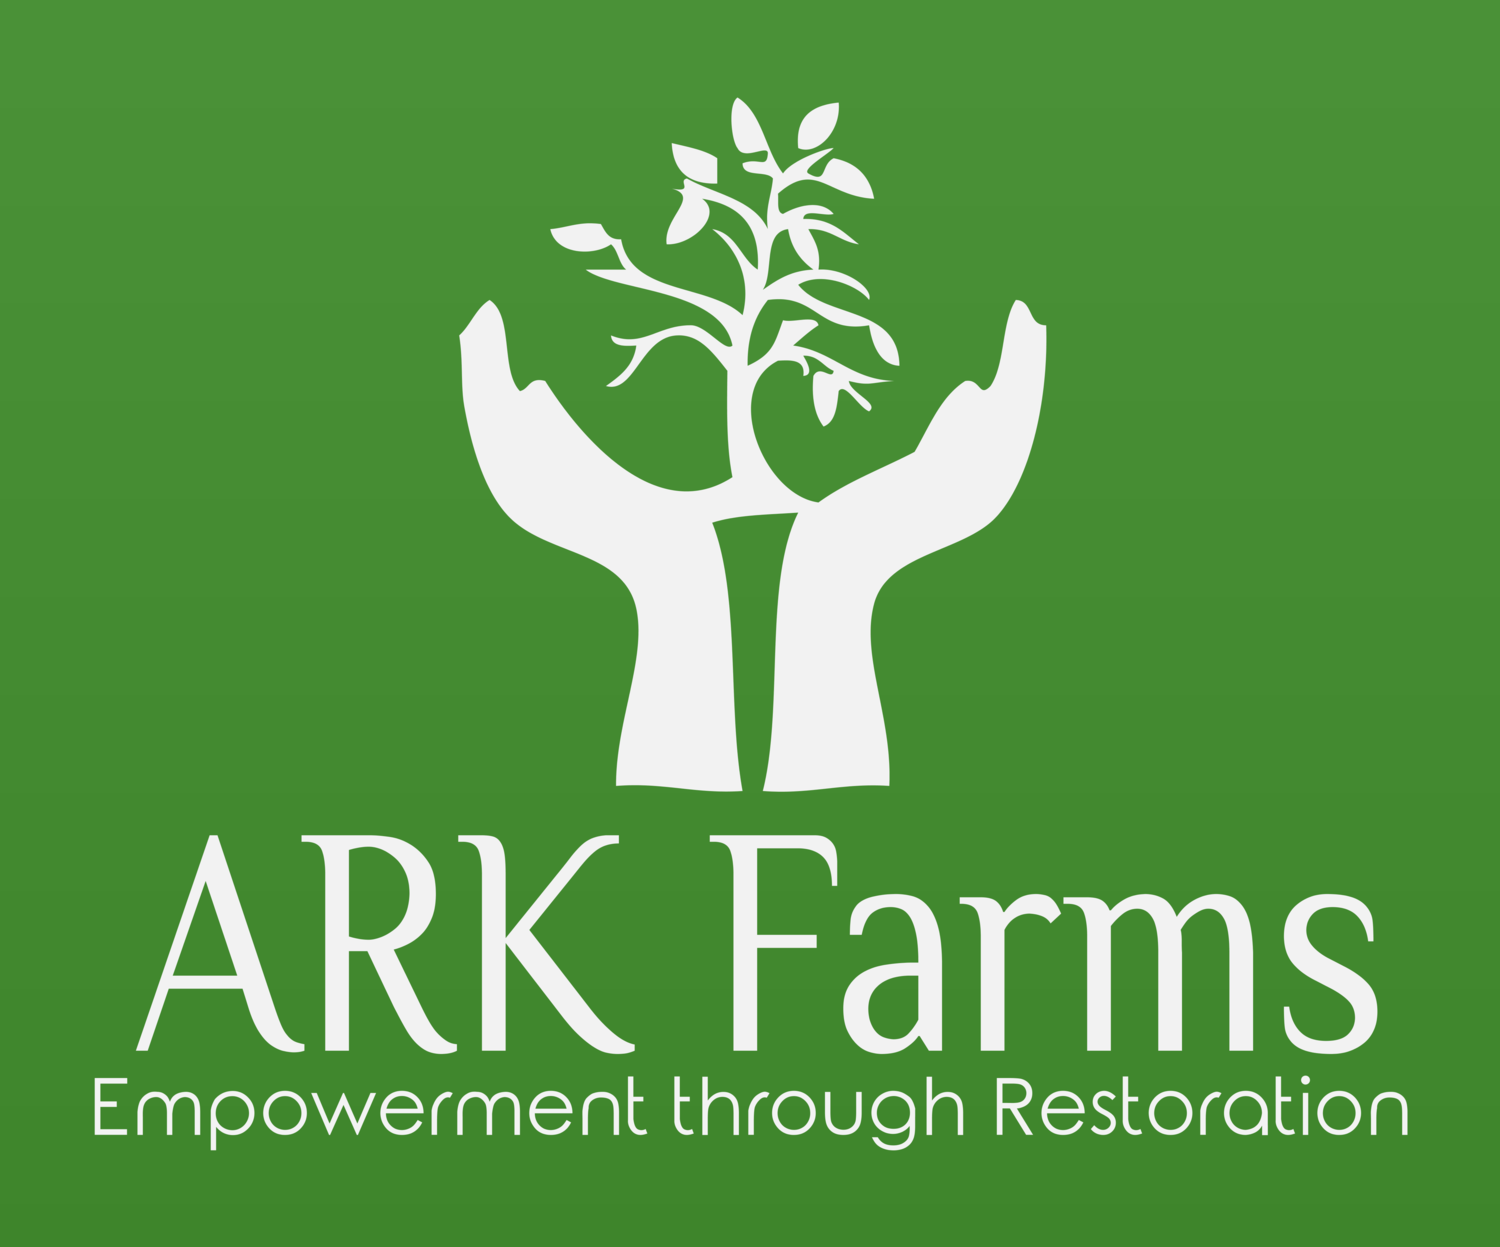 ARK FARMS